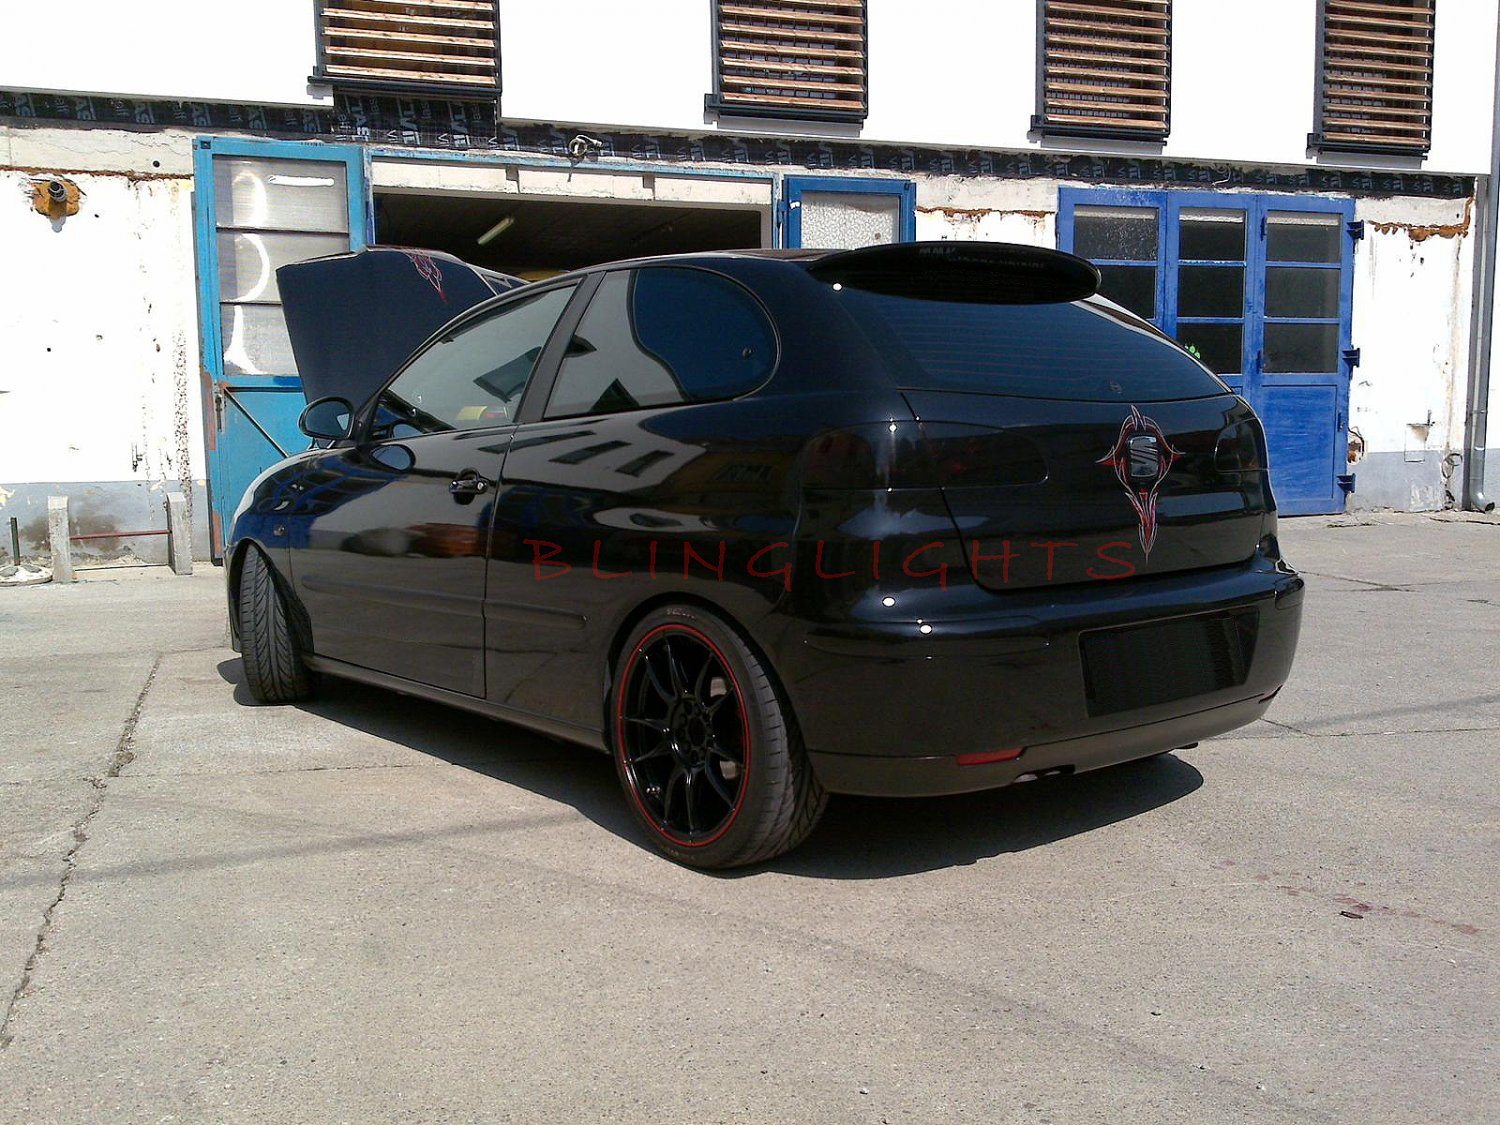 Seat Altea Tinted Smoked Taillamps Taillights Tail Lamps Lights Protection Overlays Film